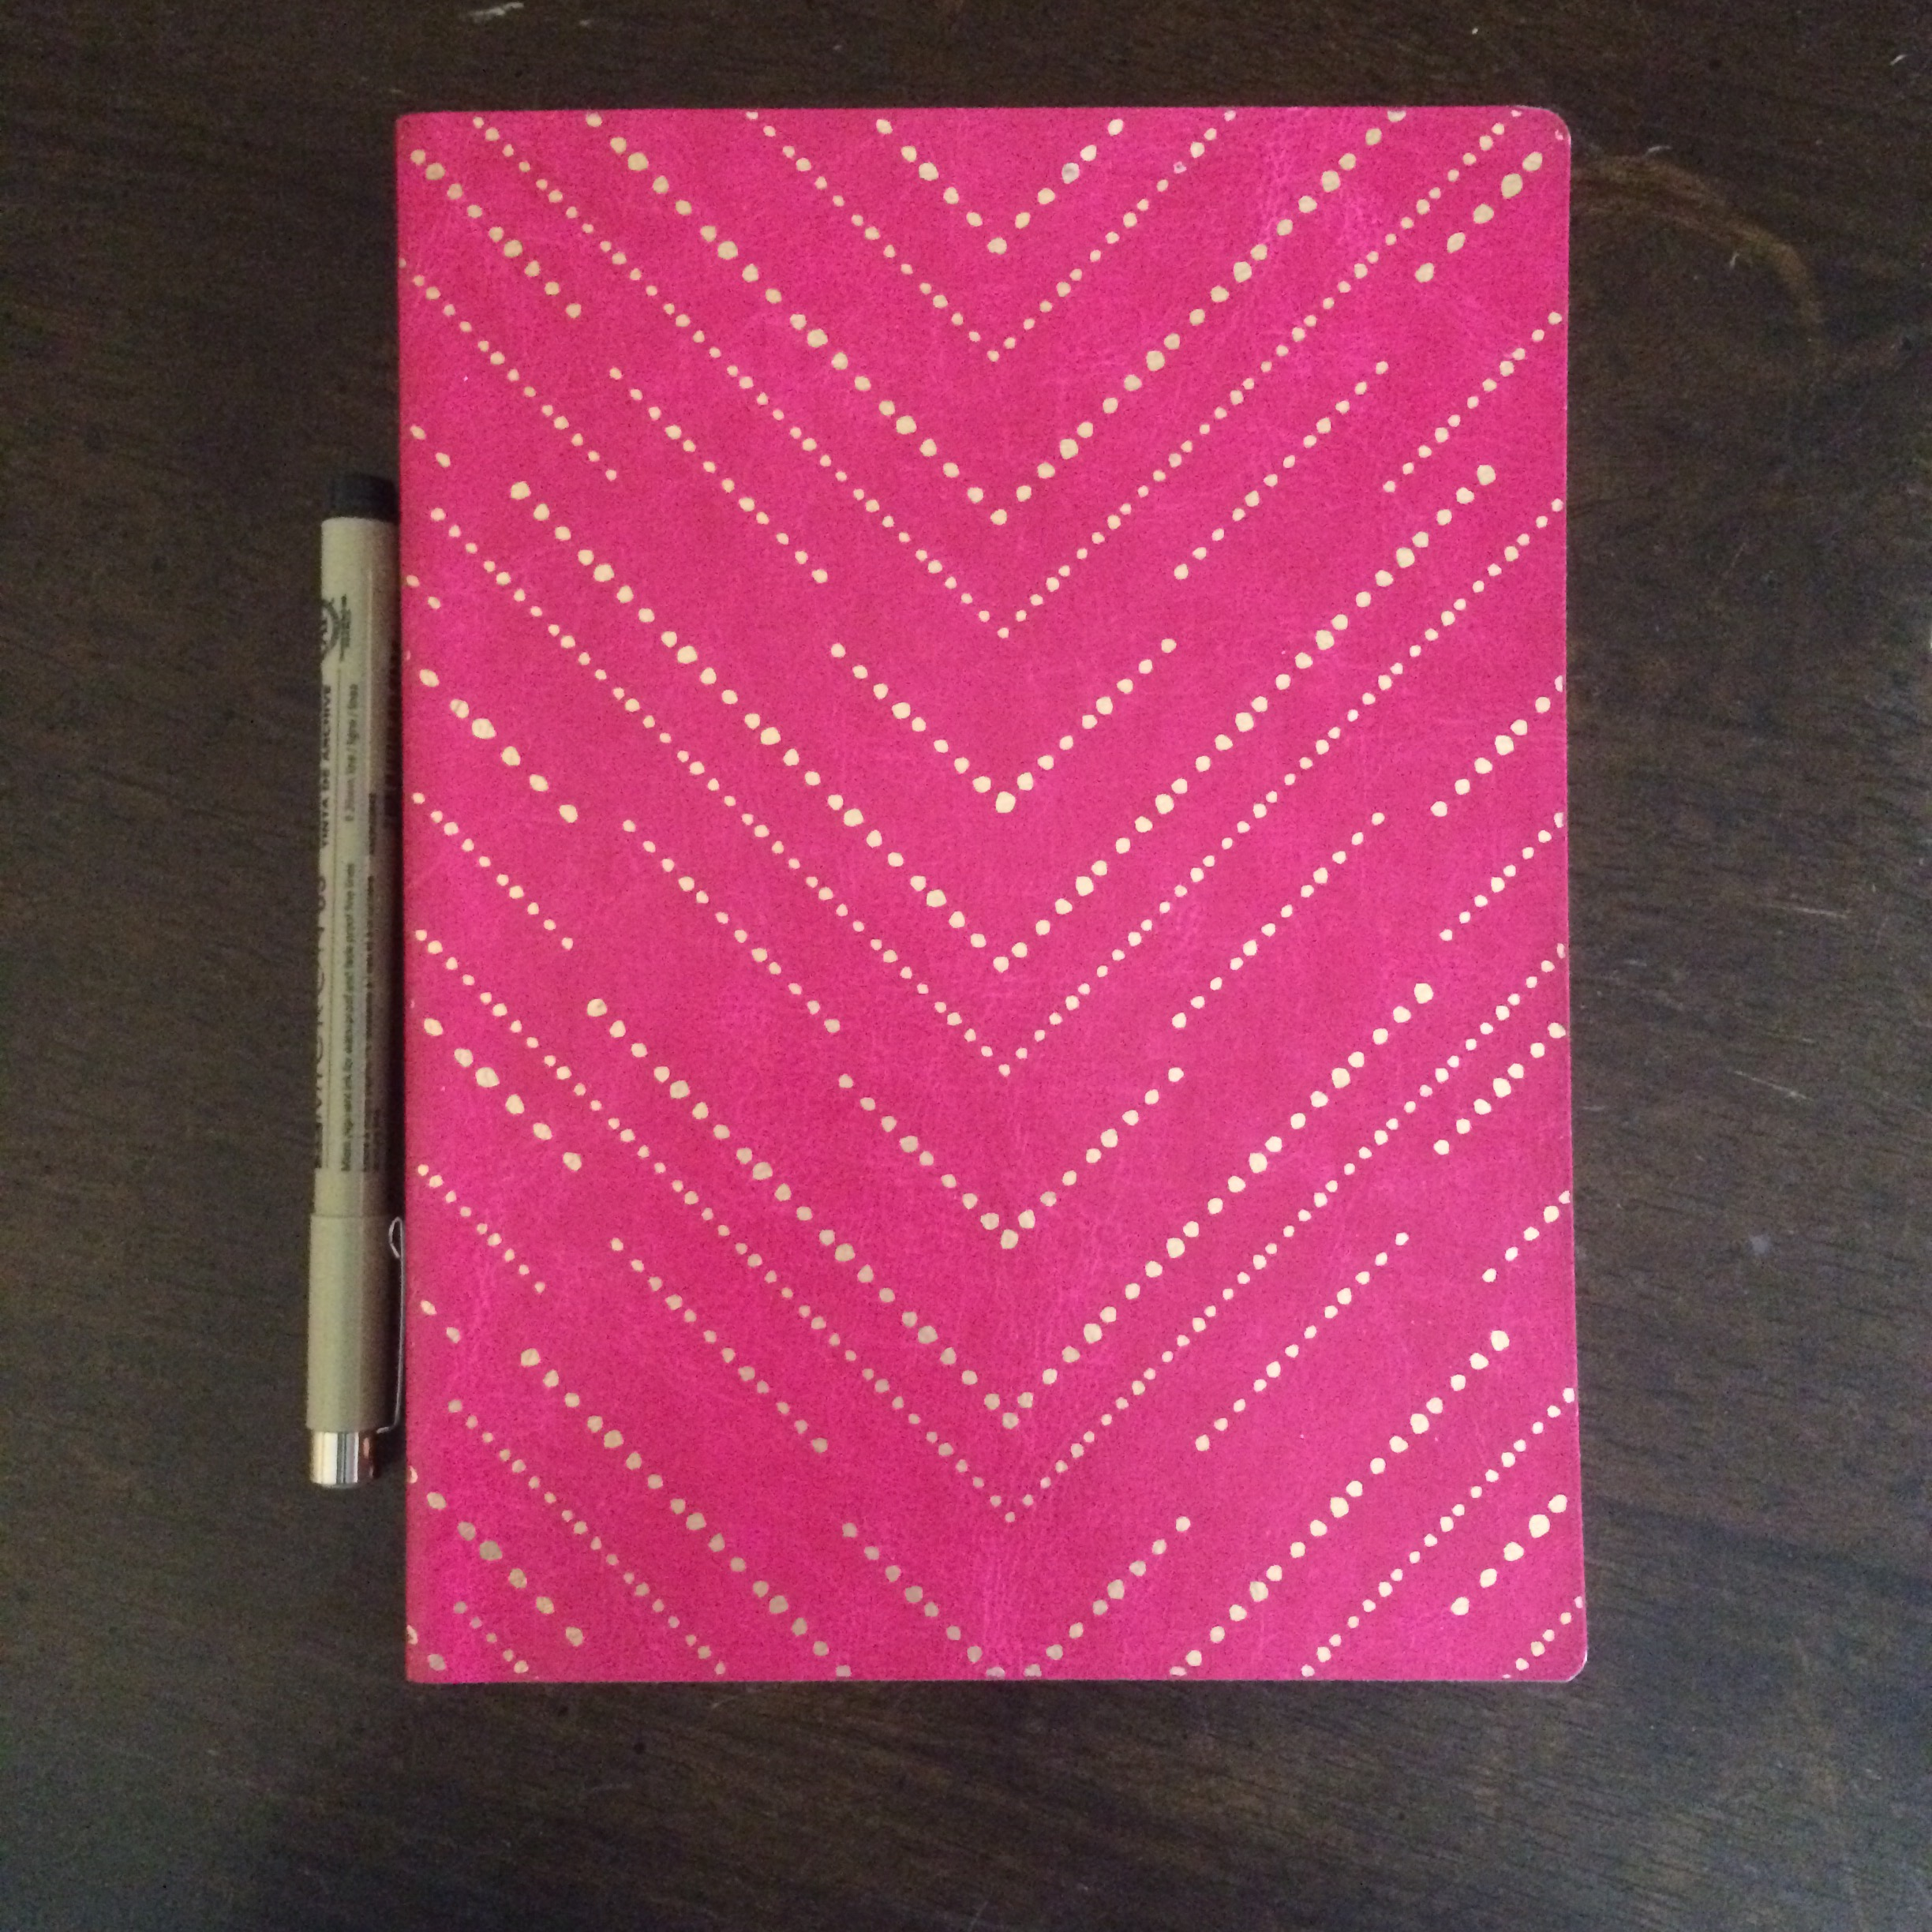 My notebook of choice for my current Bullet Journal! I snagged this one at Target.